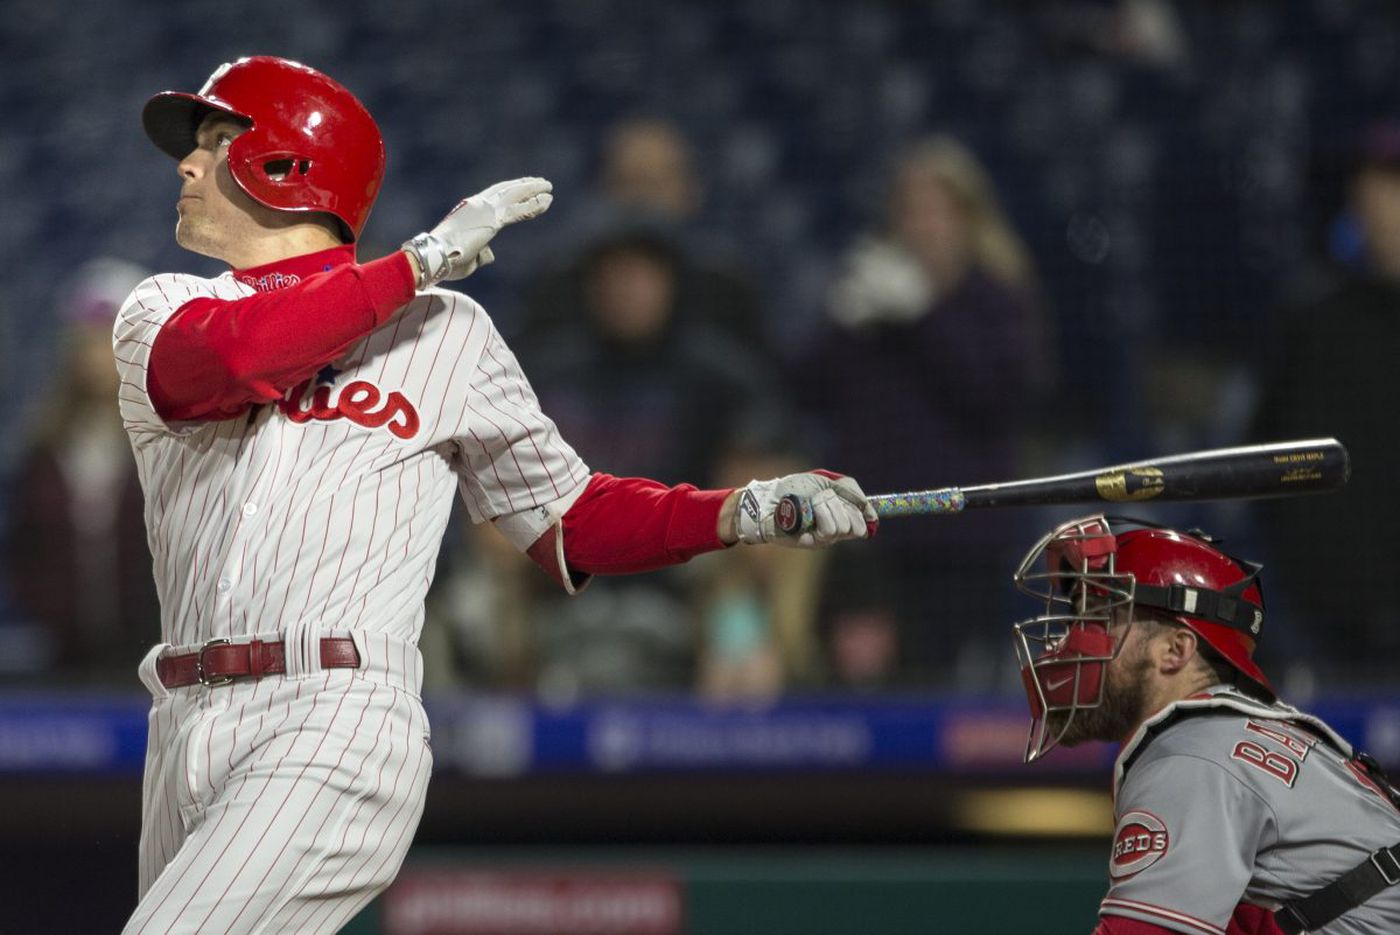 Phillies sweep Reds on Kingery's sacrifice fly, complete 5-1 homestand